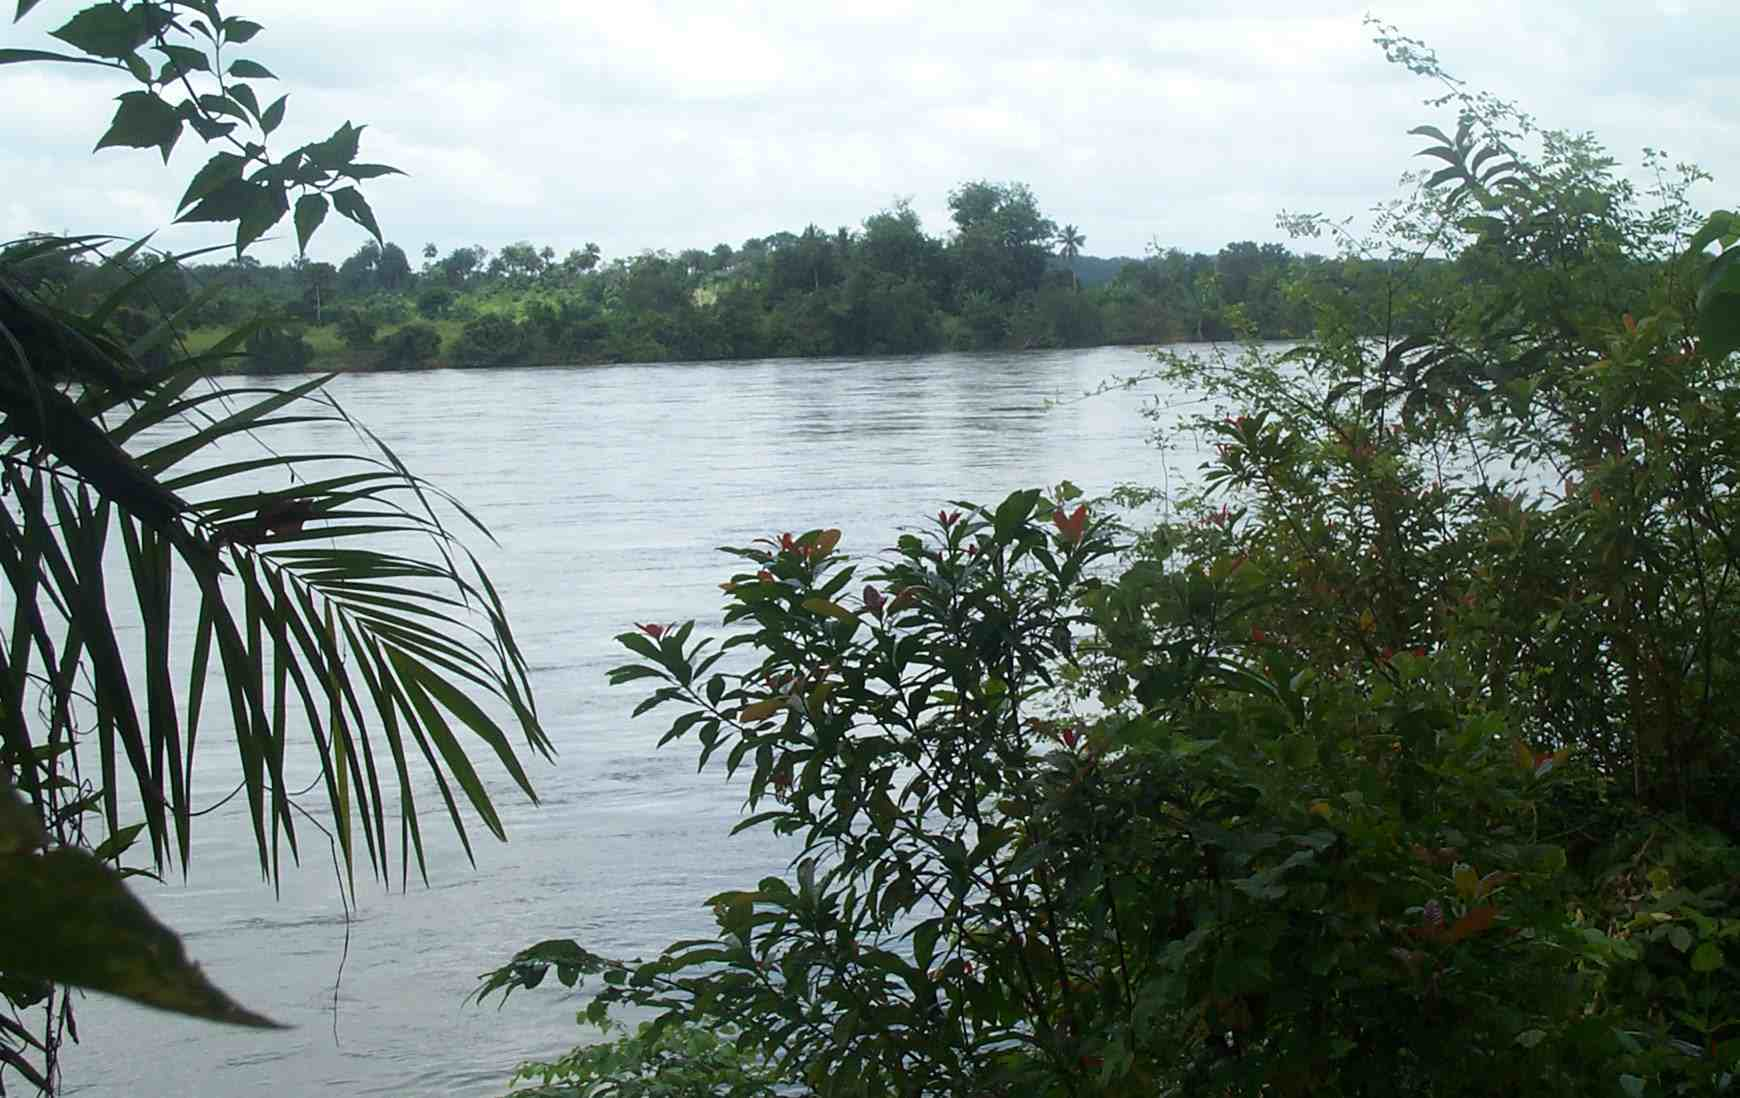 Saint Paul River at White Plains, Liberia, towards the end of the rainy season